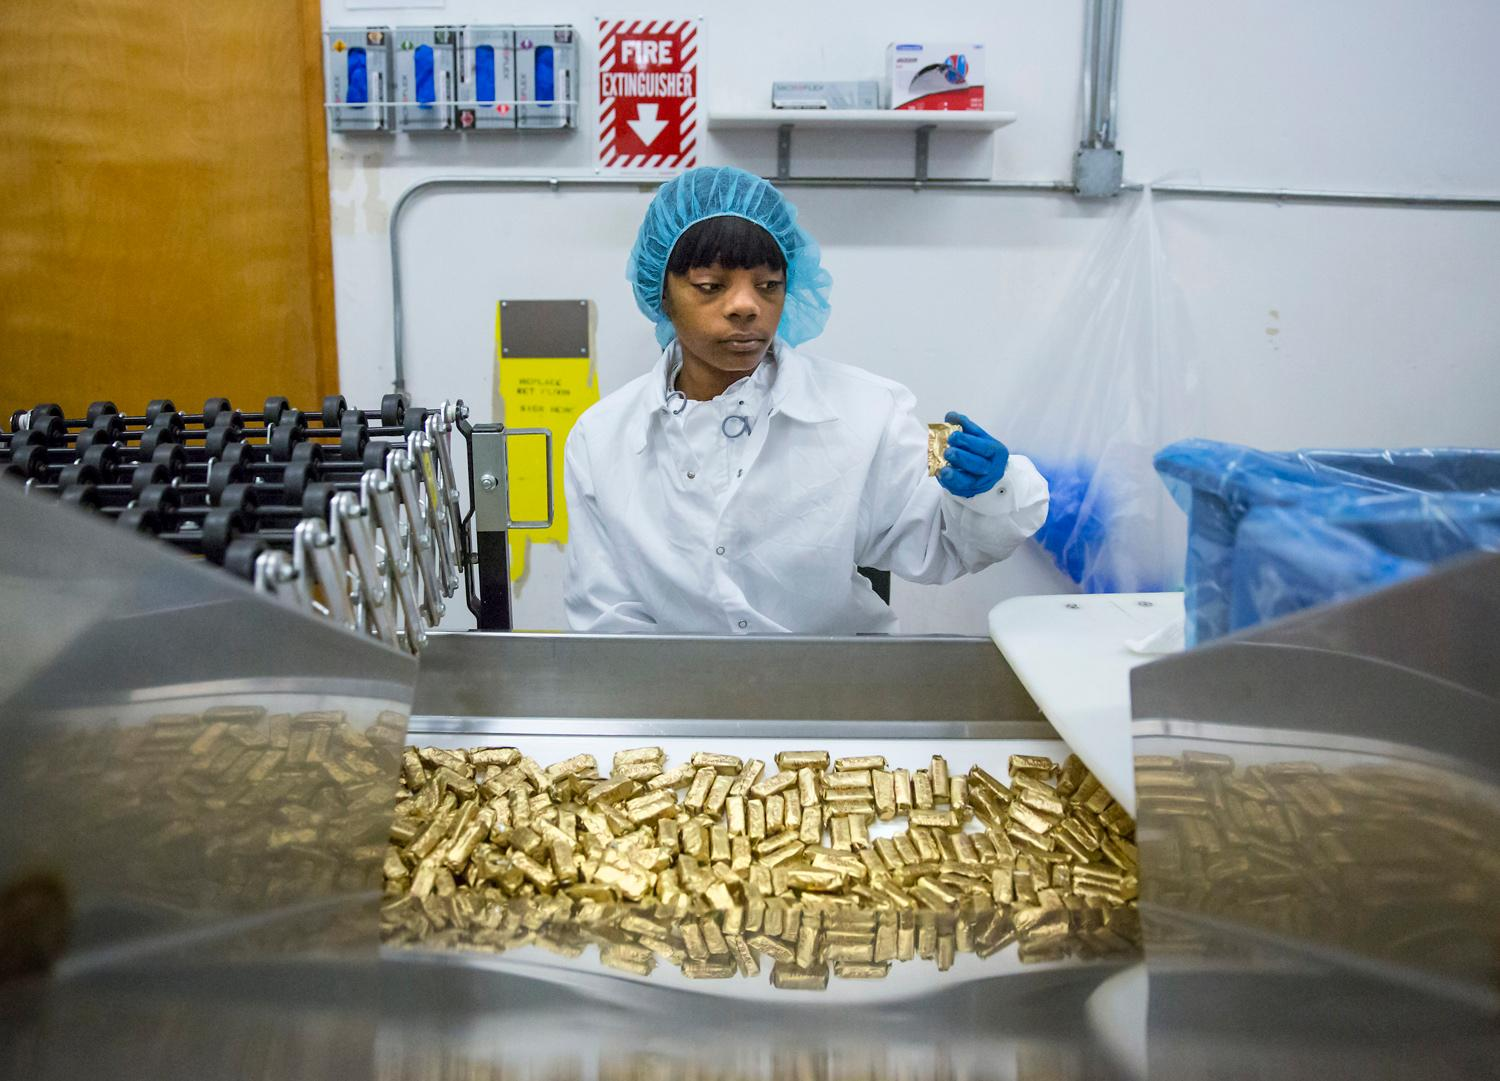 The signature gold foil of Almond Roca has been synonymous with rich decadent luxury worldwide, but did you know this quintessential candy is made right here in the Northwest. We took a tour of the Tacoma factory, where they're then shipped to 35 different countries! (Image: Sy Bean / Seattle Refined)